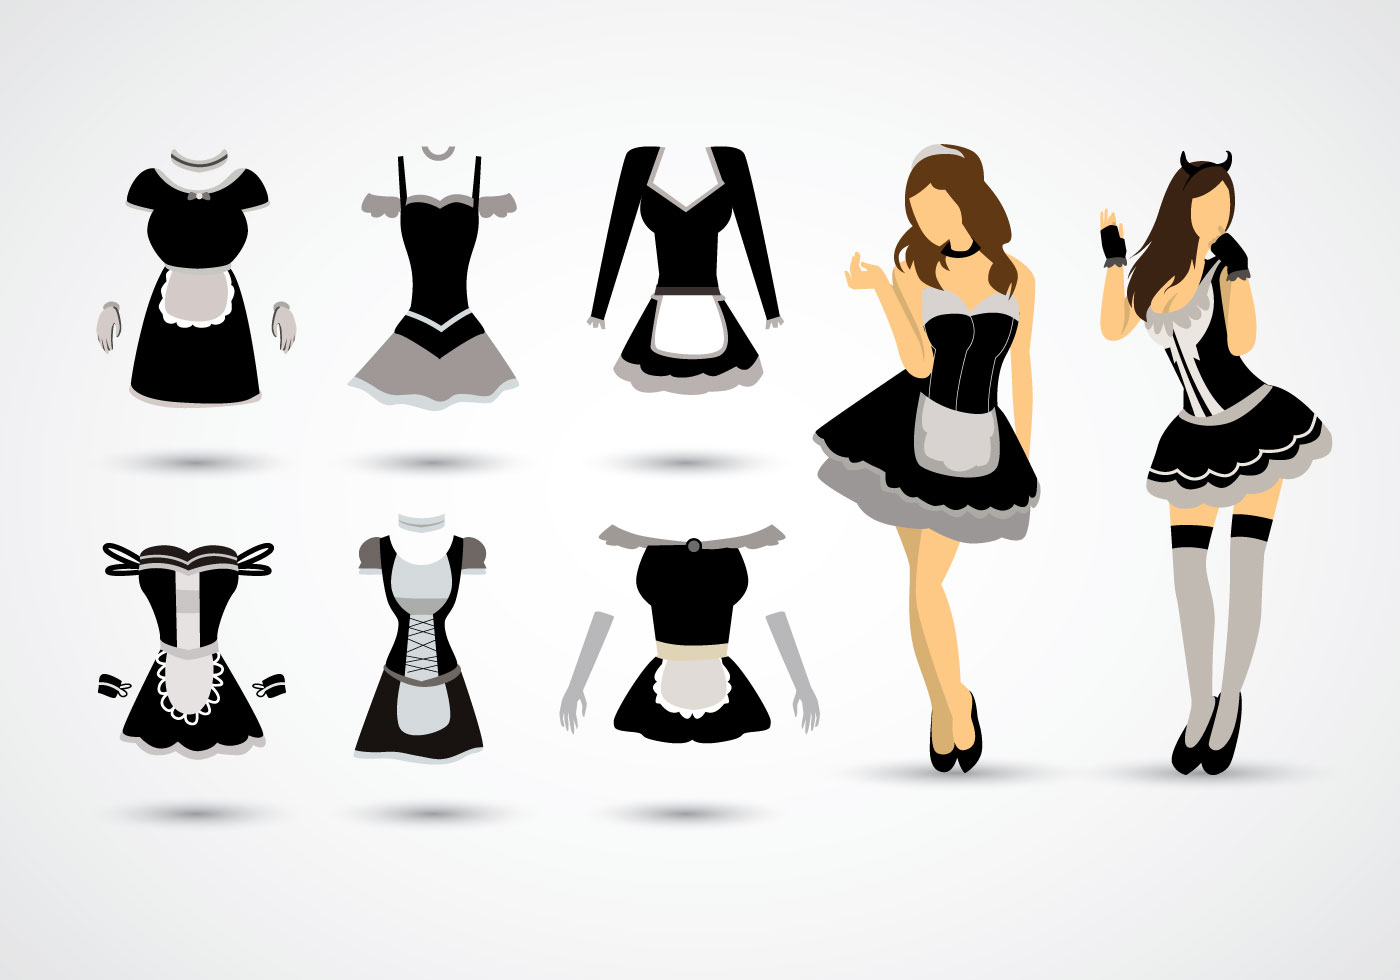 Free Vector Cartoon French Maid - Download Free Vector Art, Stock ...